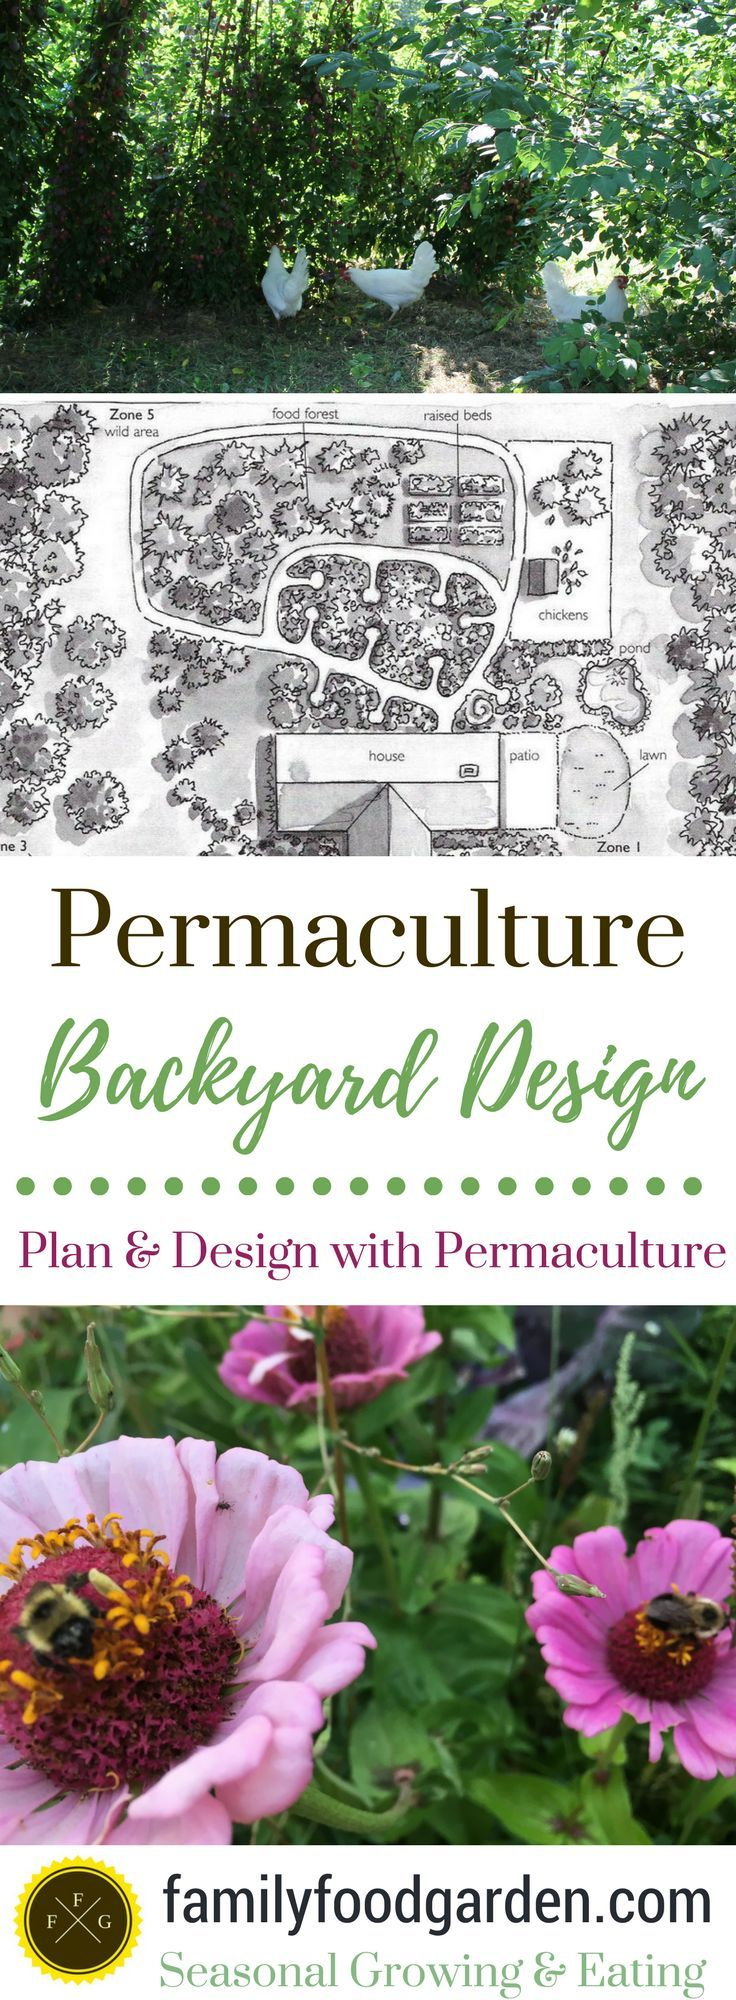 Backyard Permaculture Design & Tips | Permaculture design ... on Backyard Permaculture Design id=35066